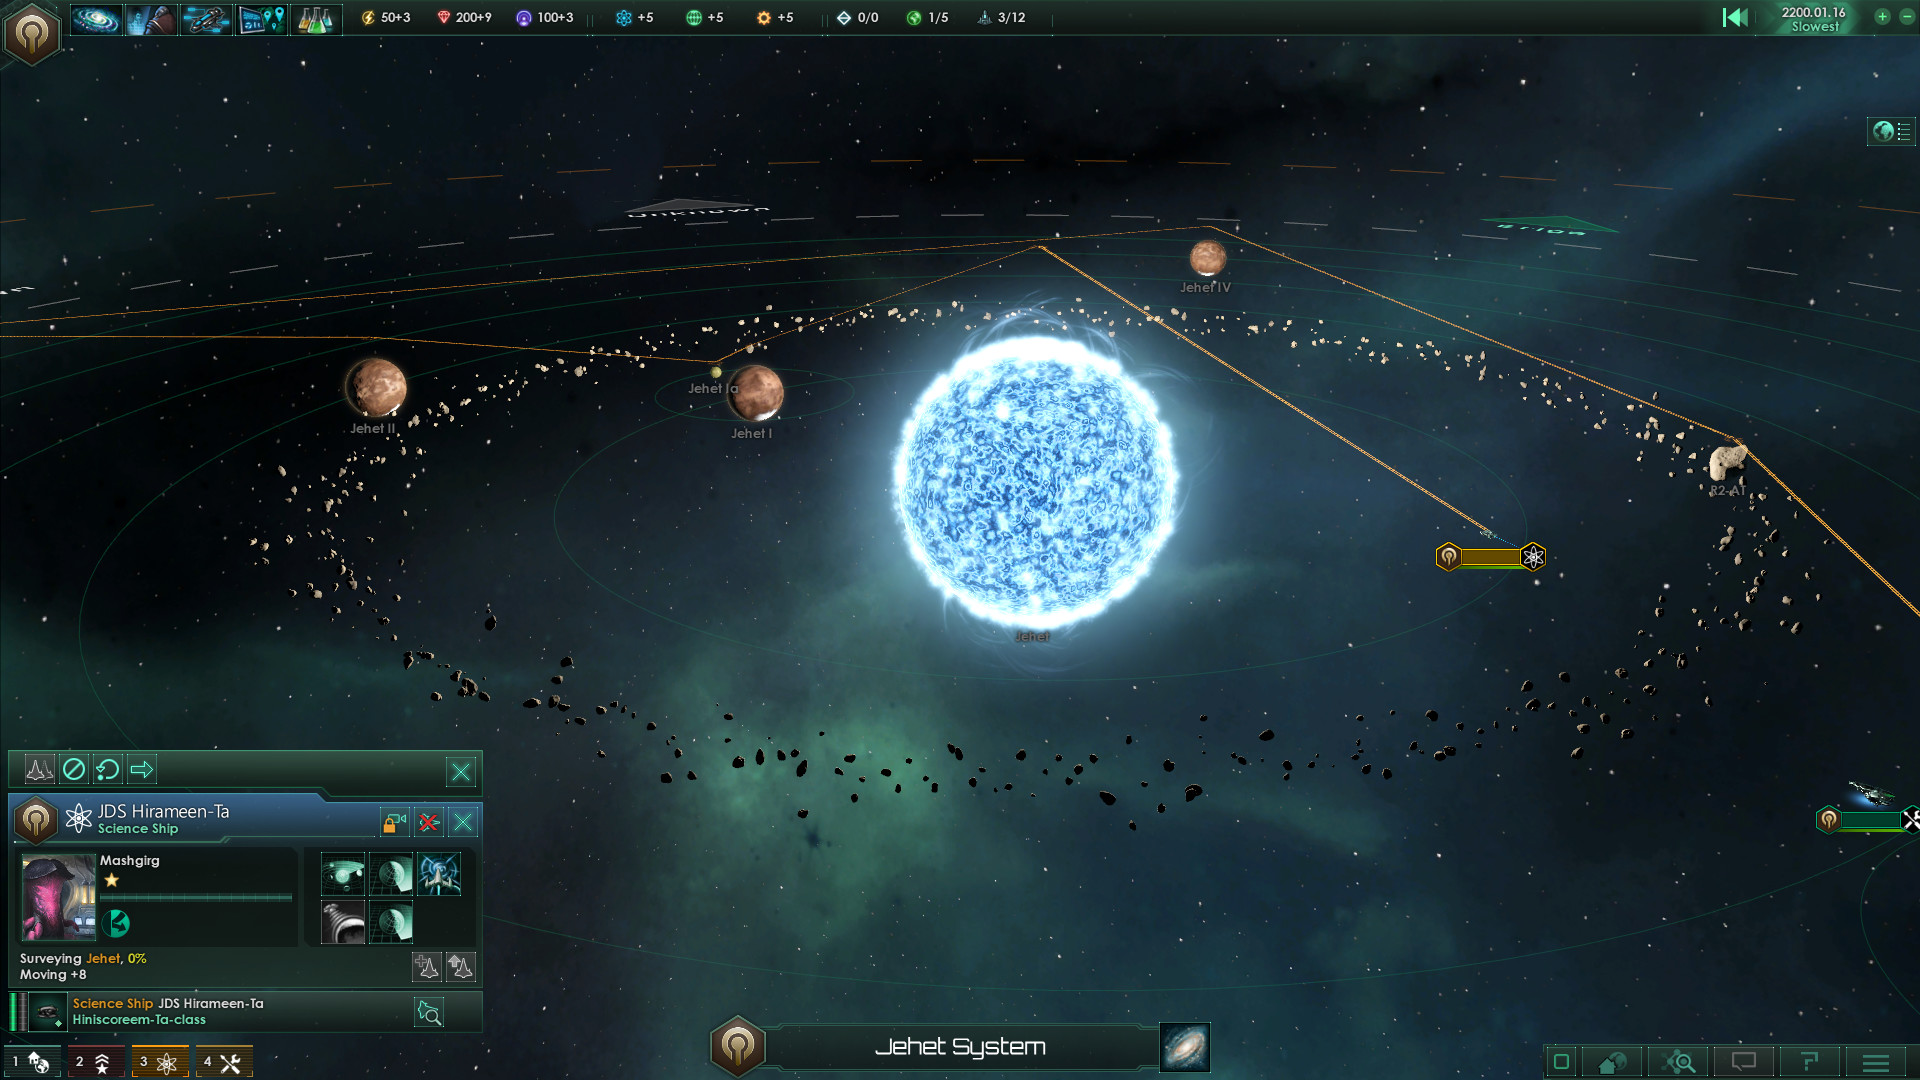 ss b9c37212f0caea35ba3050dc958c1331622d97f5.1920x1080 - Stellaris Review - Reaching for the Stars